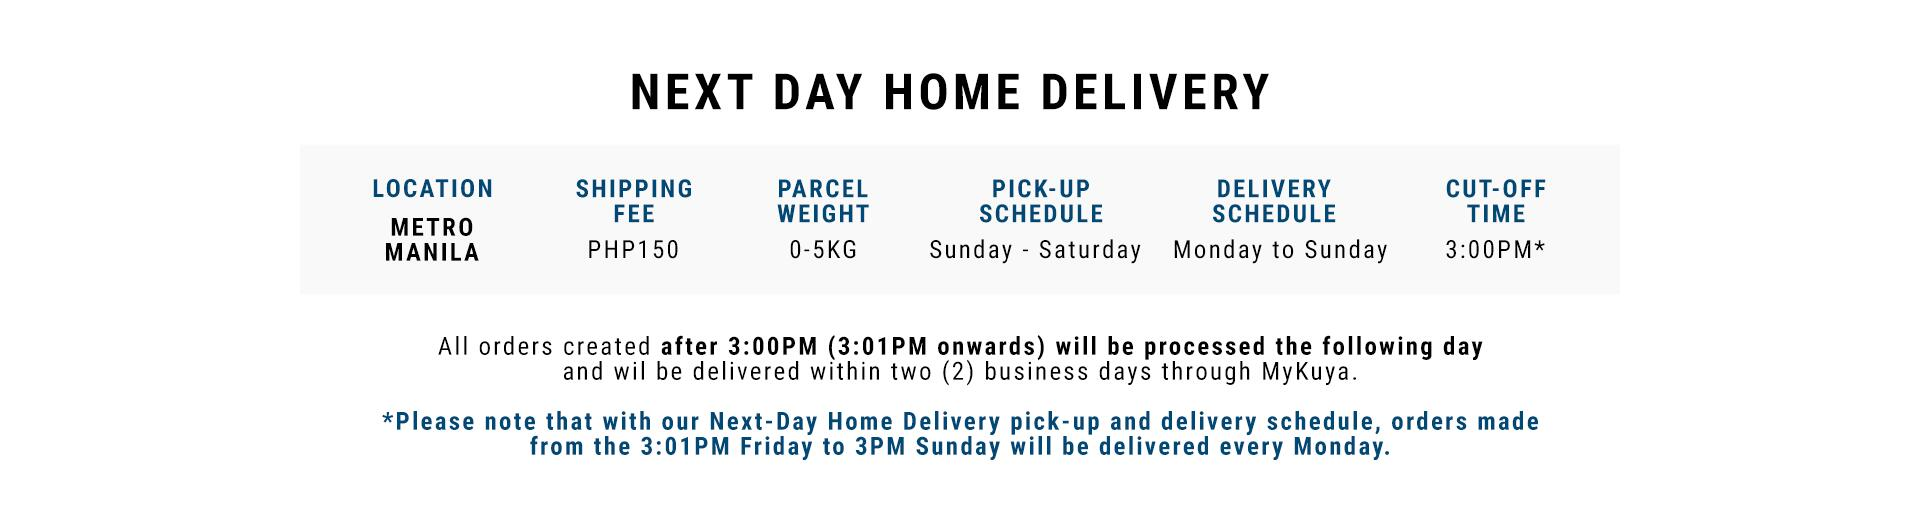 Decathlon Philippines Next Day Delivery